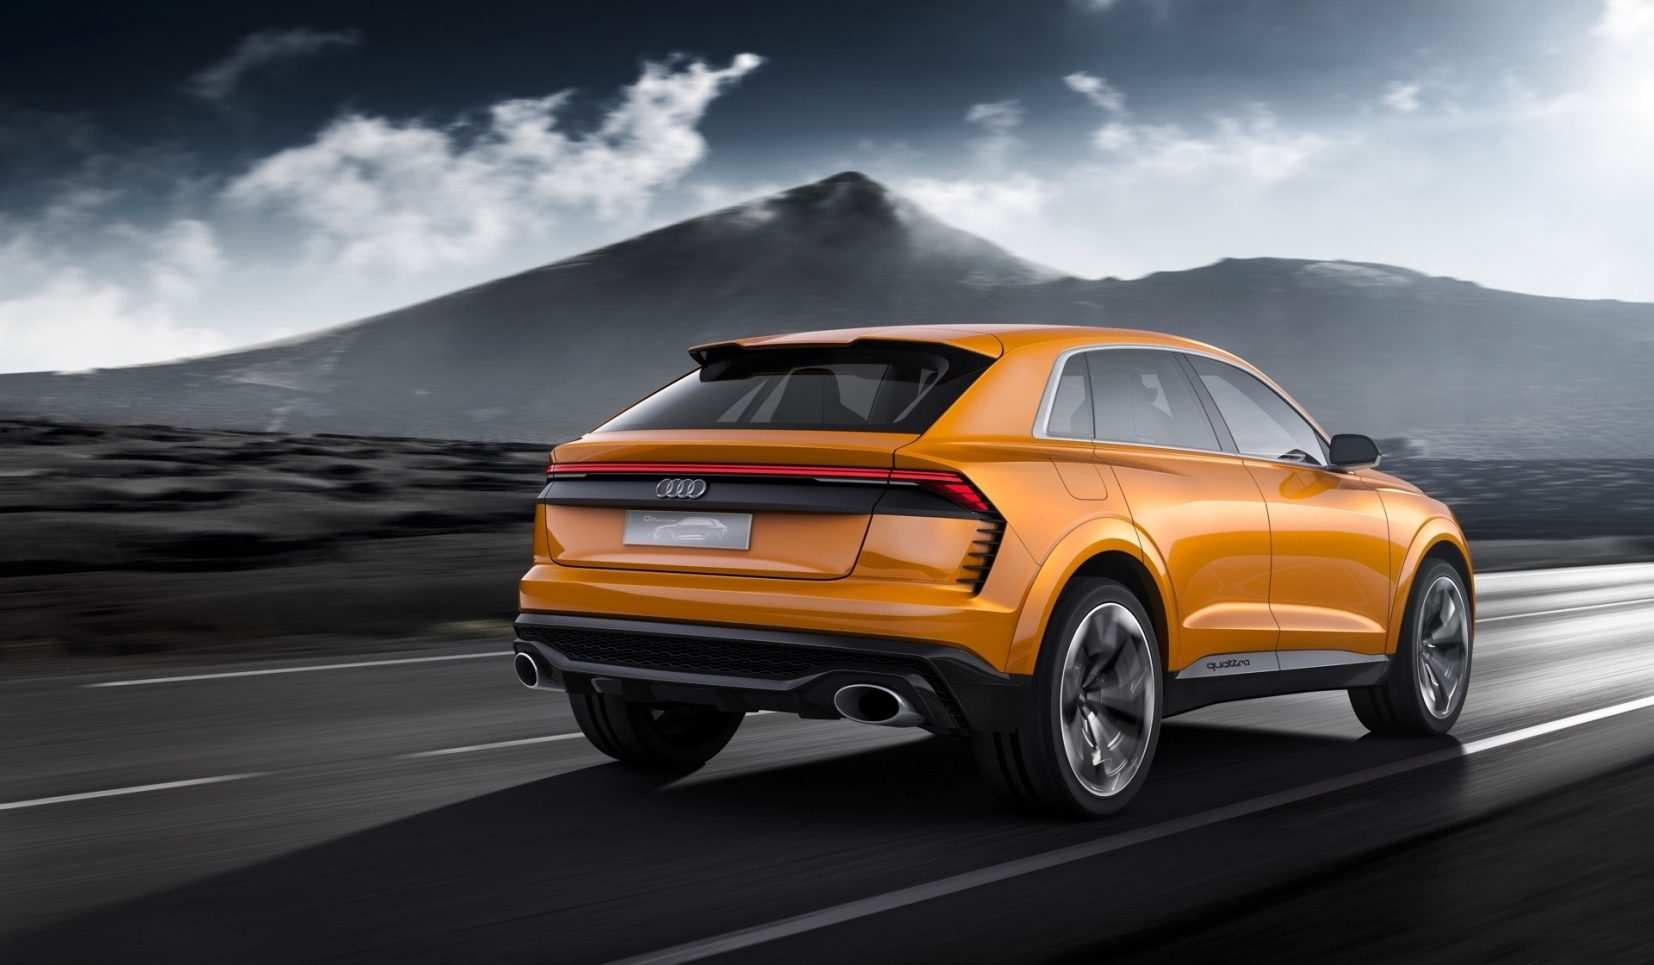 91 All New 2020 Audi Q8 Price and Review by 2020 Audi Q8